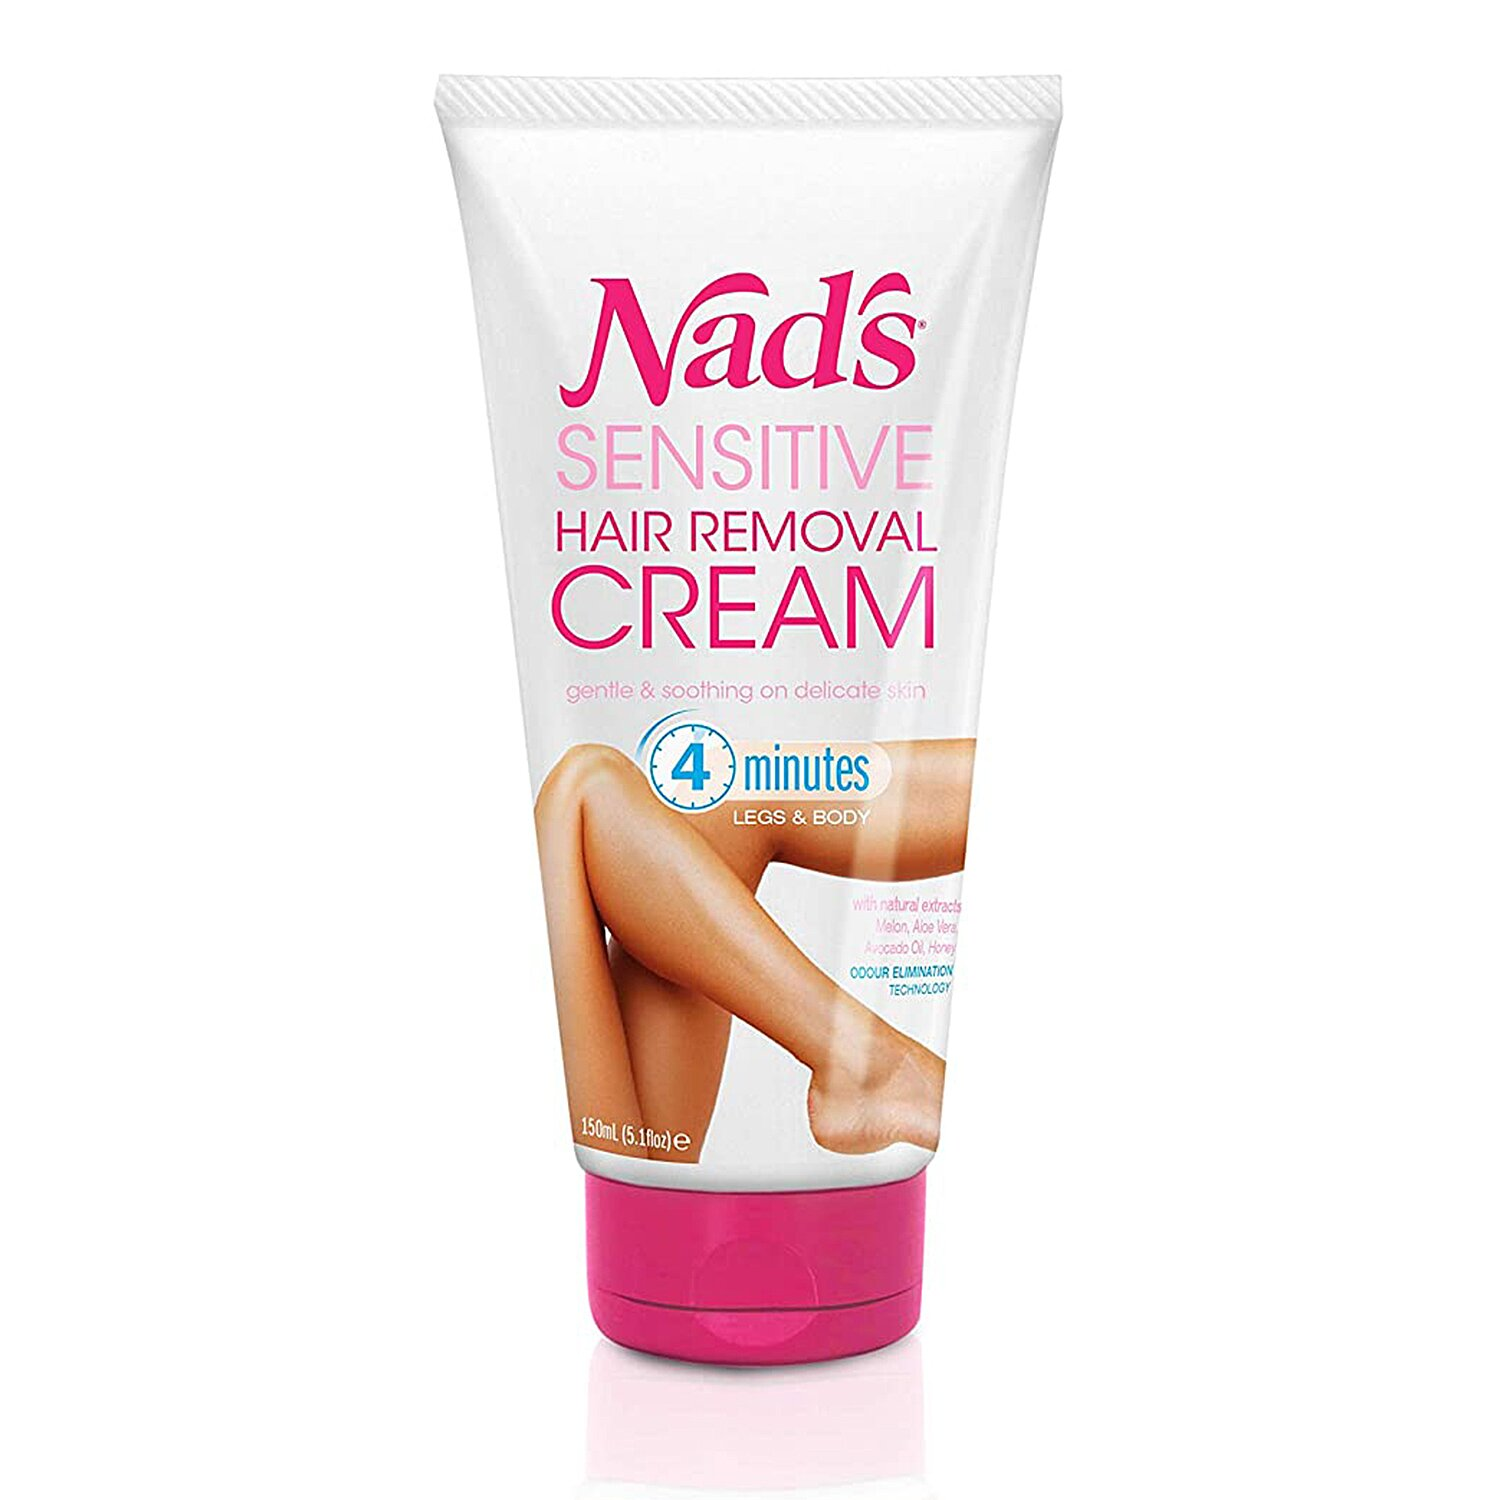 The 7 Best Hair Removal Creams According To Customer Reviews